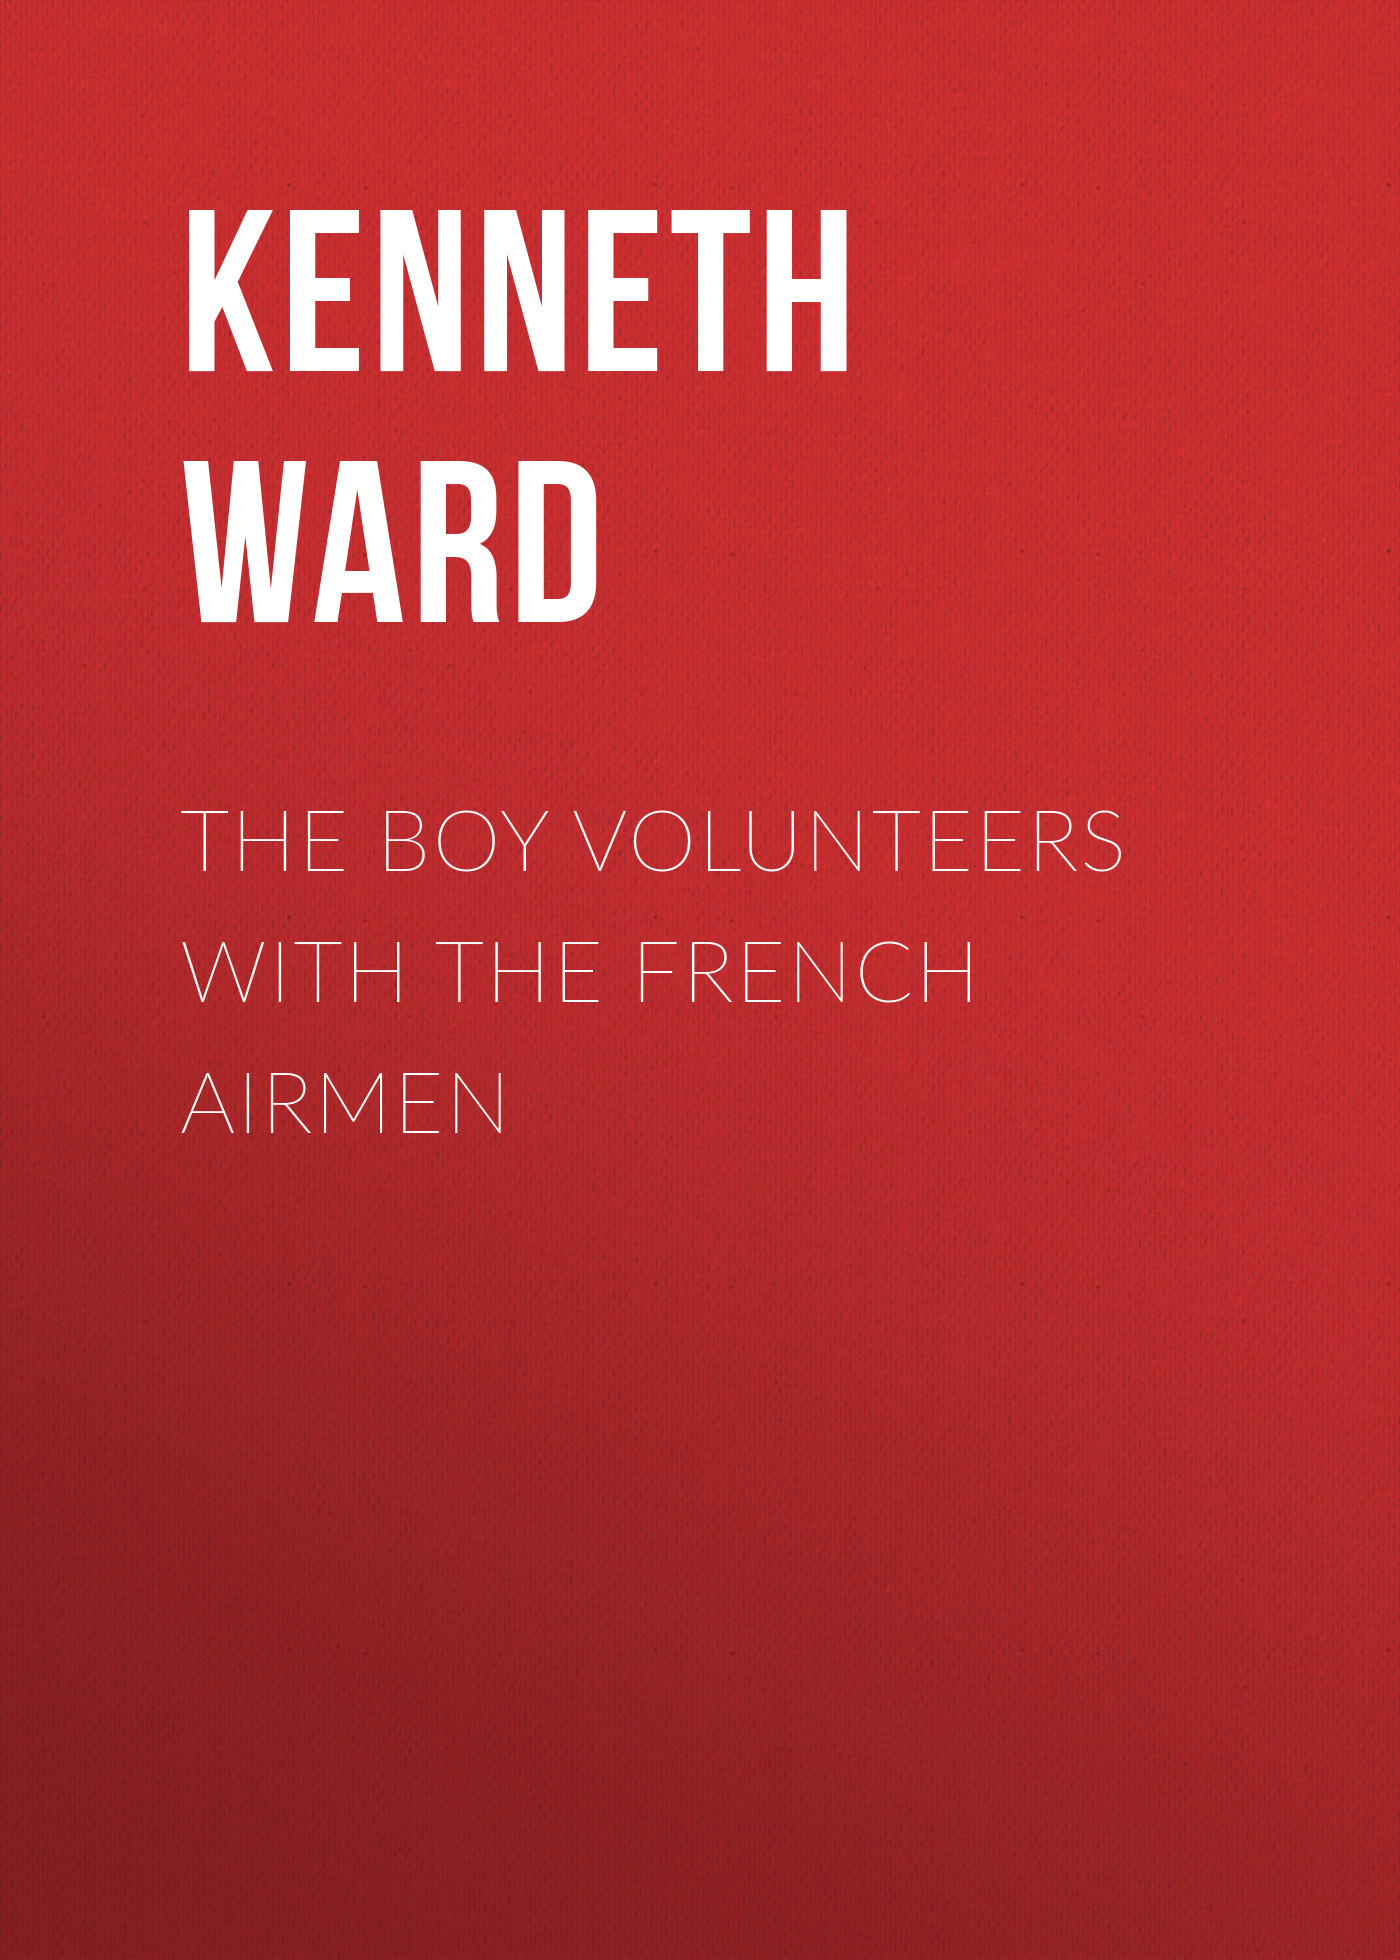 Kenneth Ward The Boy Volunteers with the French Airmen land of savagery land of promise – the european image of the american